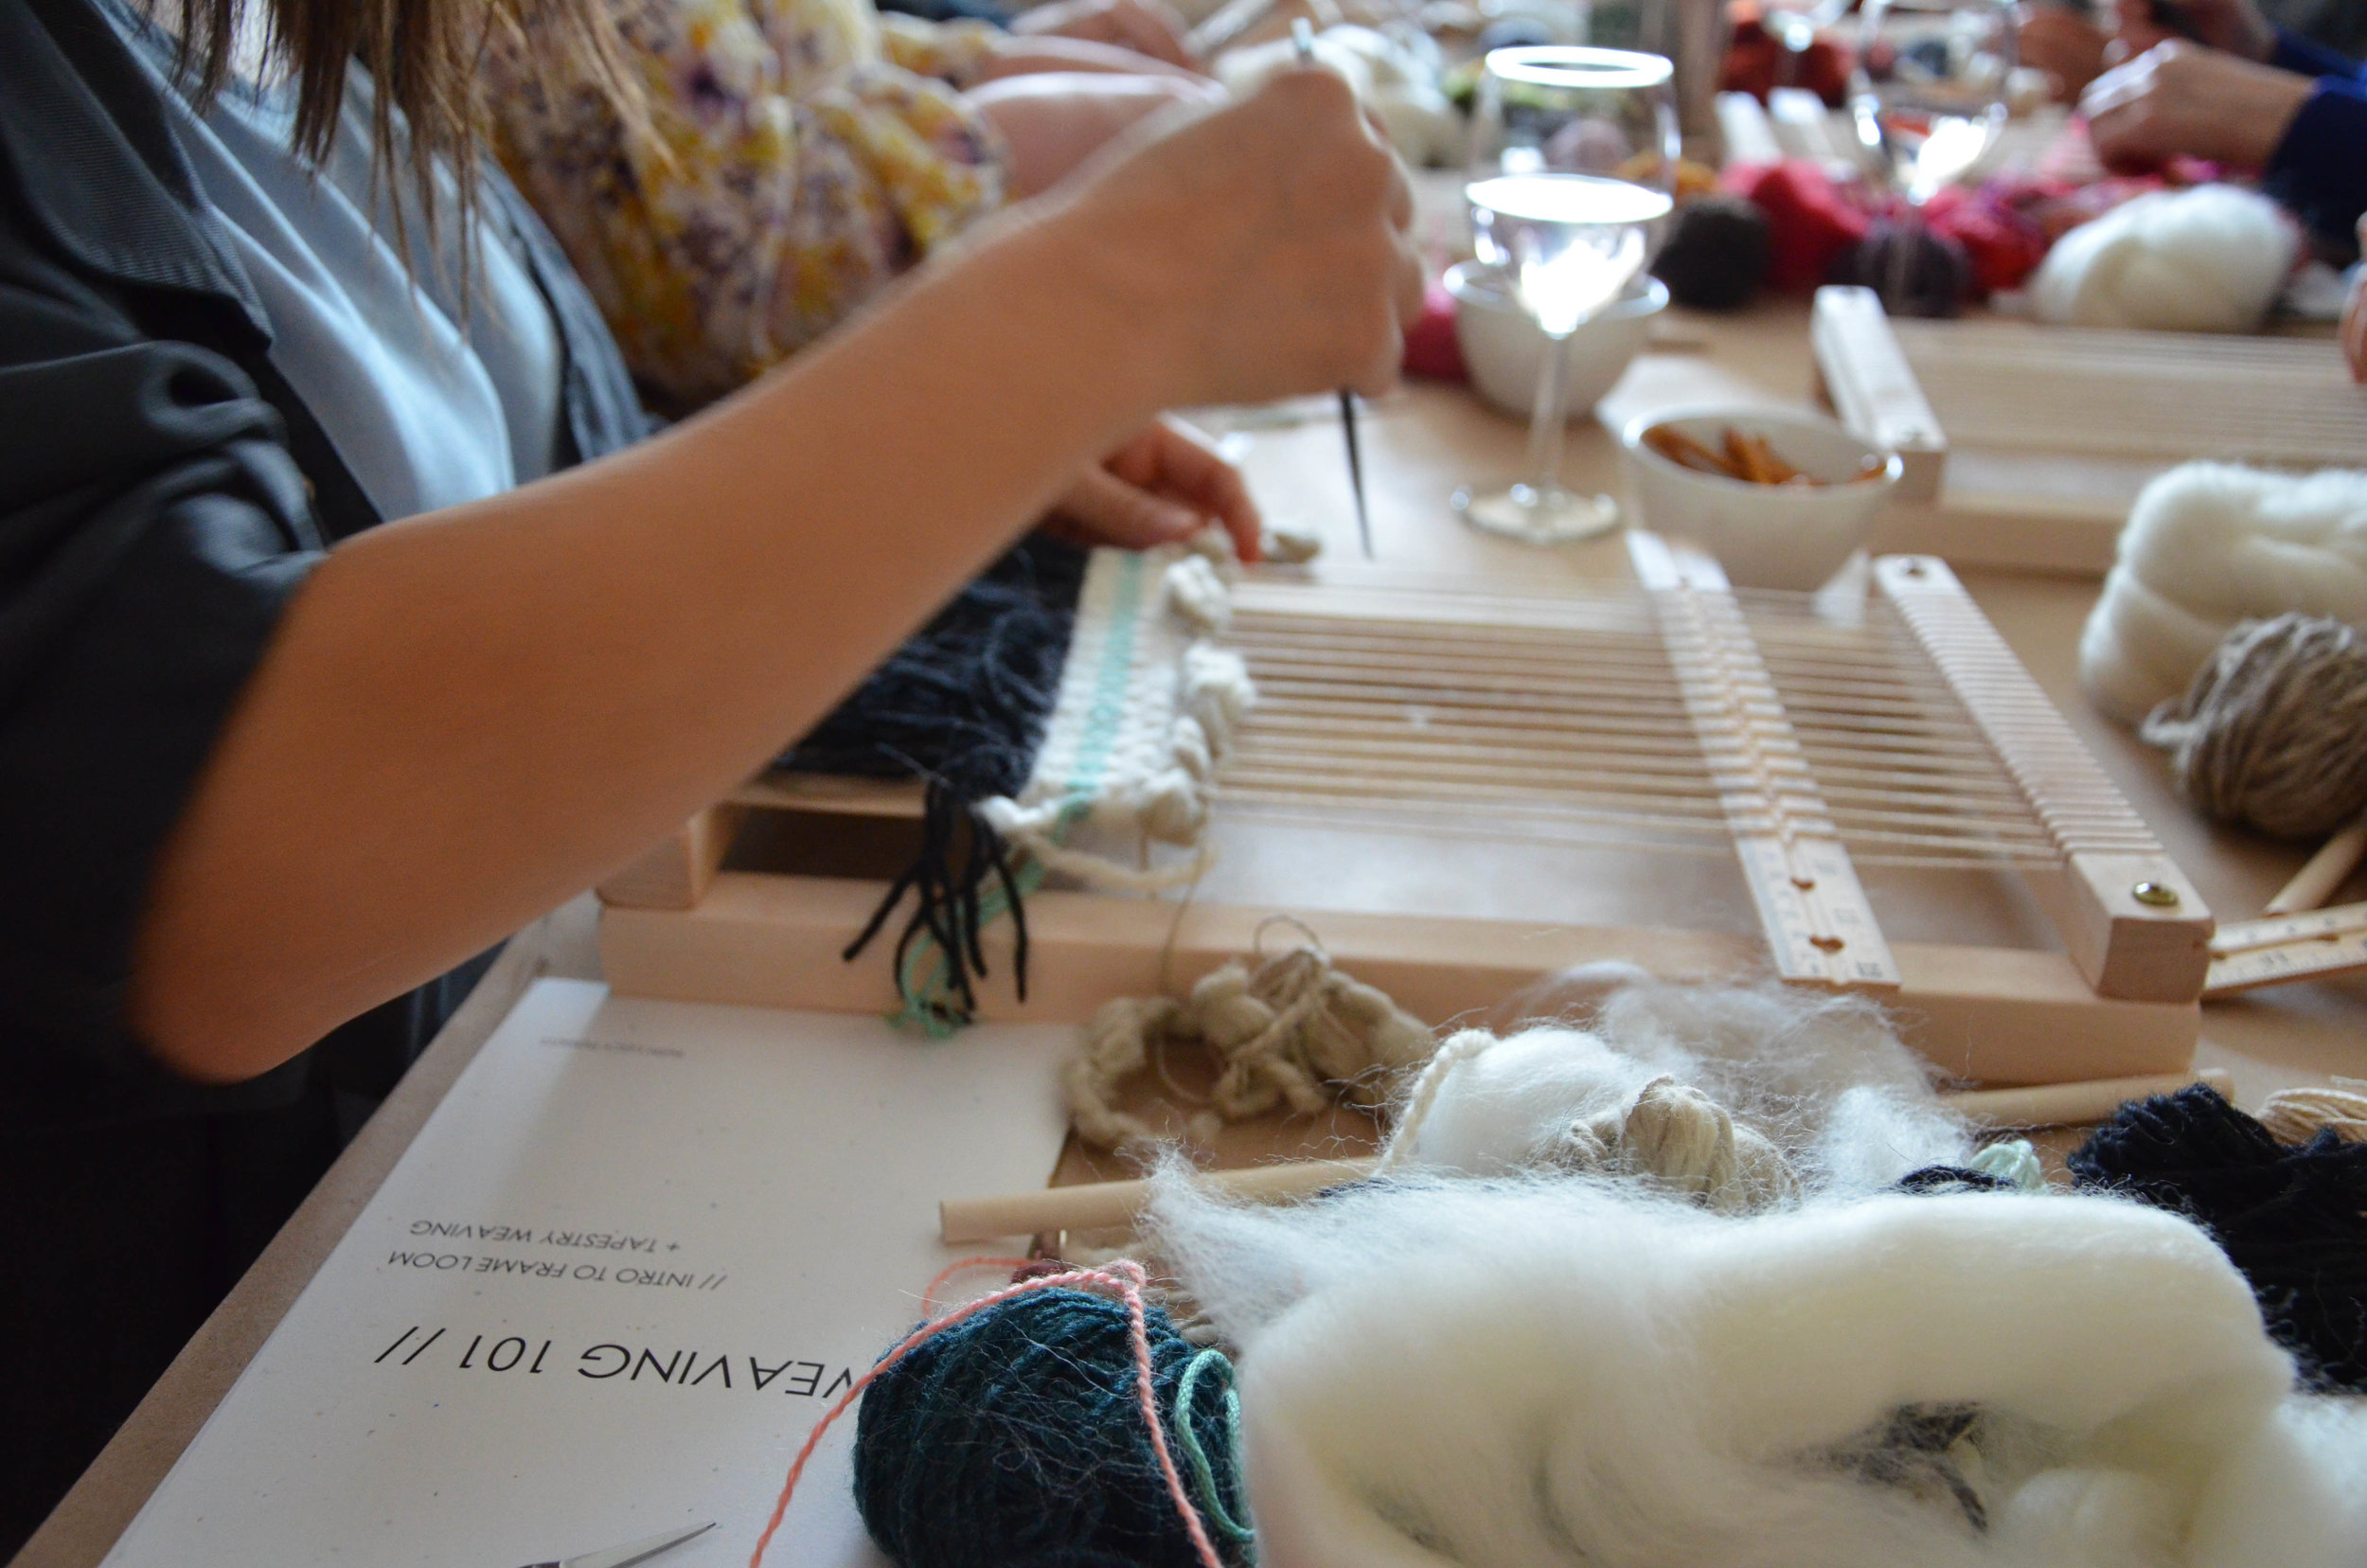 Learn to weave - weaving workshops and classes in vancouver and victoria bc with Lucy Poskitt